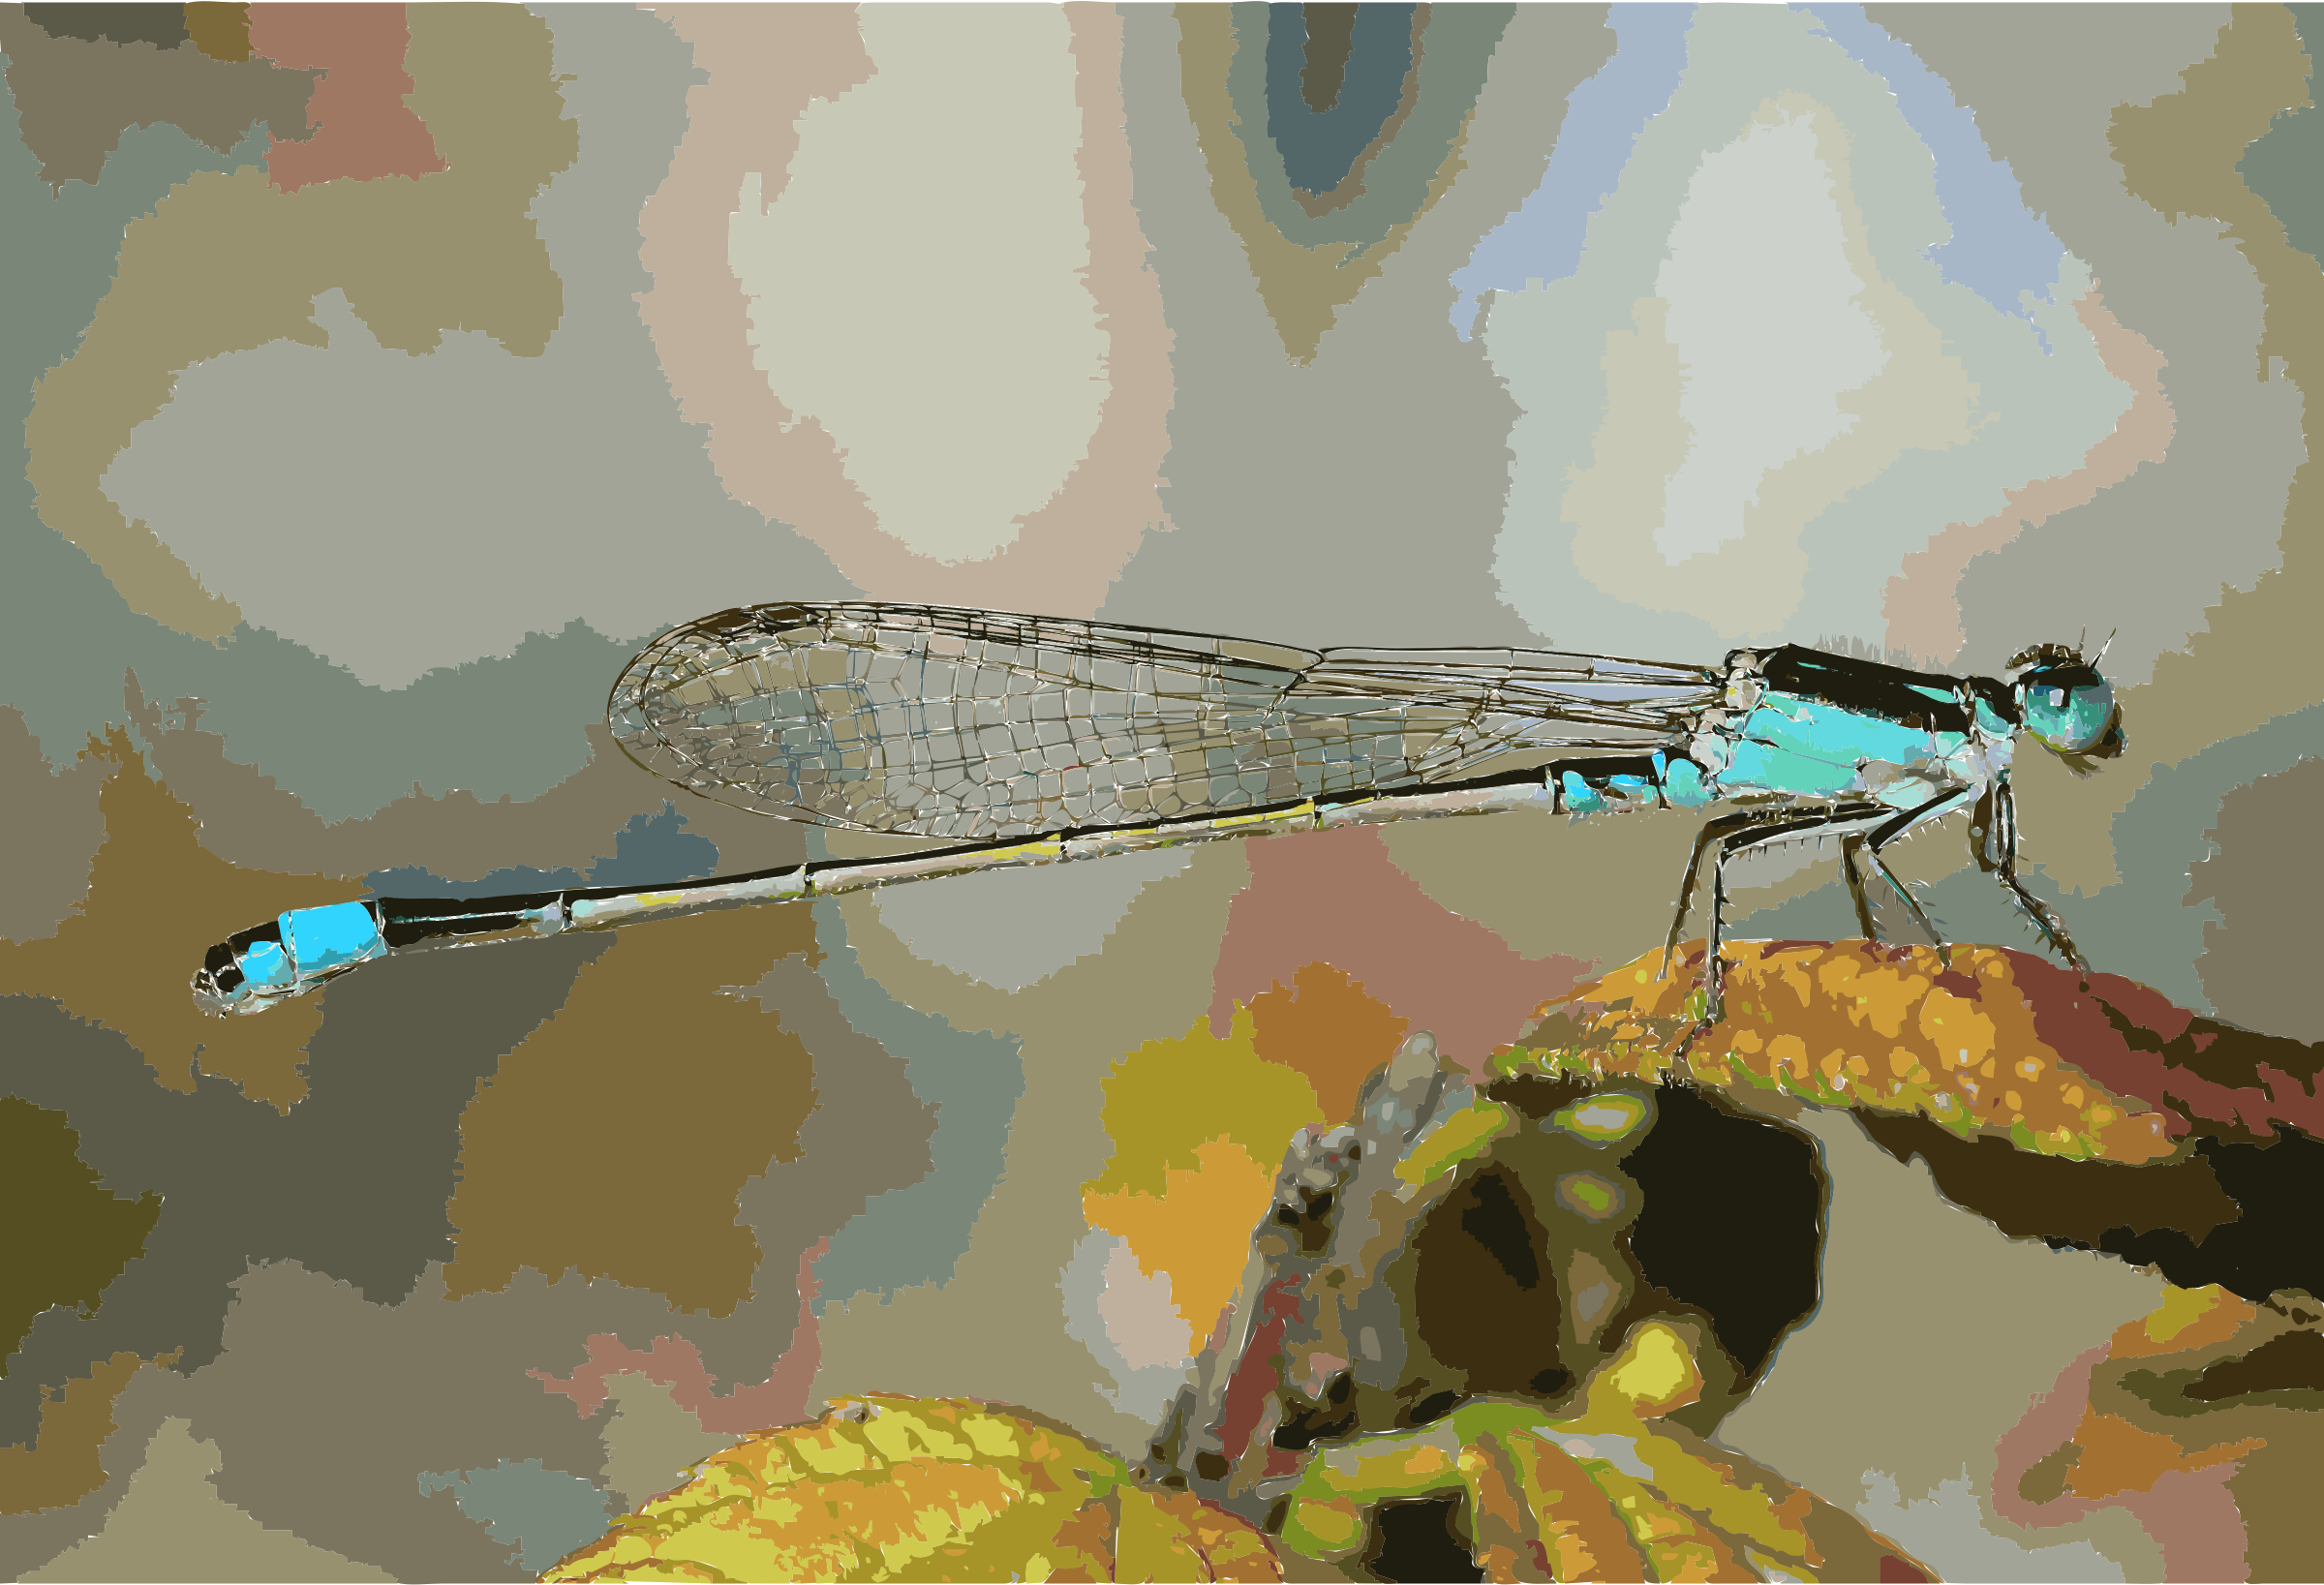 Damselfly October 2007 Osaka Japan by 5m3aif+1mxpwegrtz1po